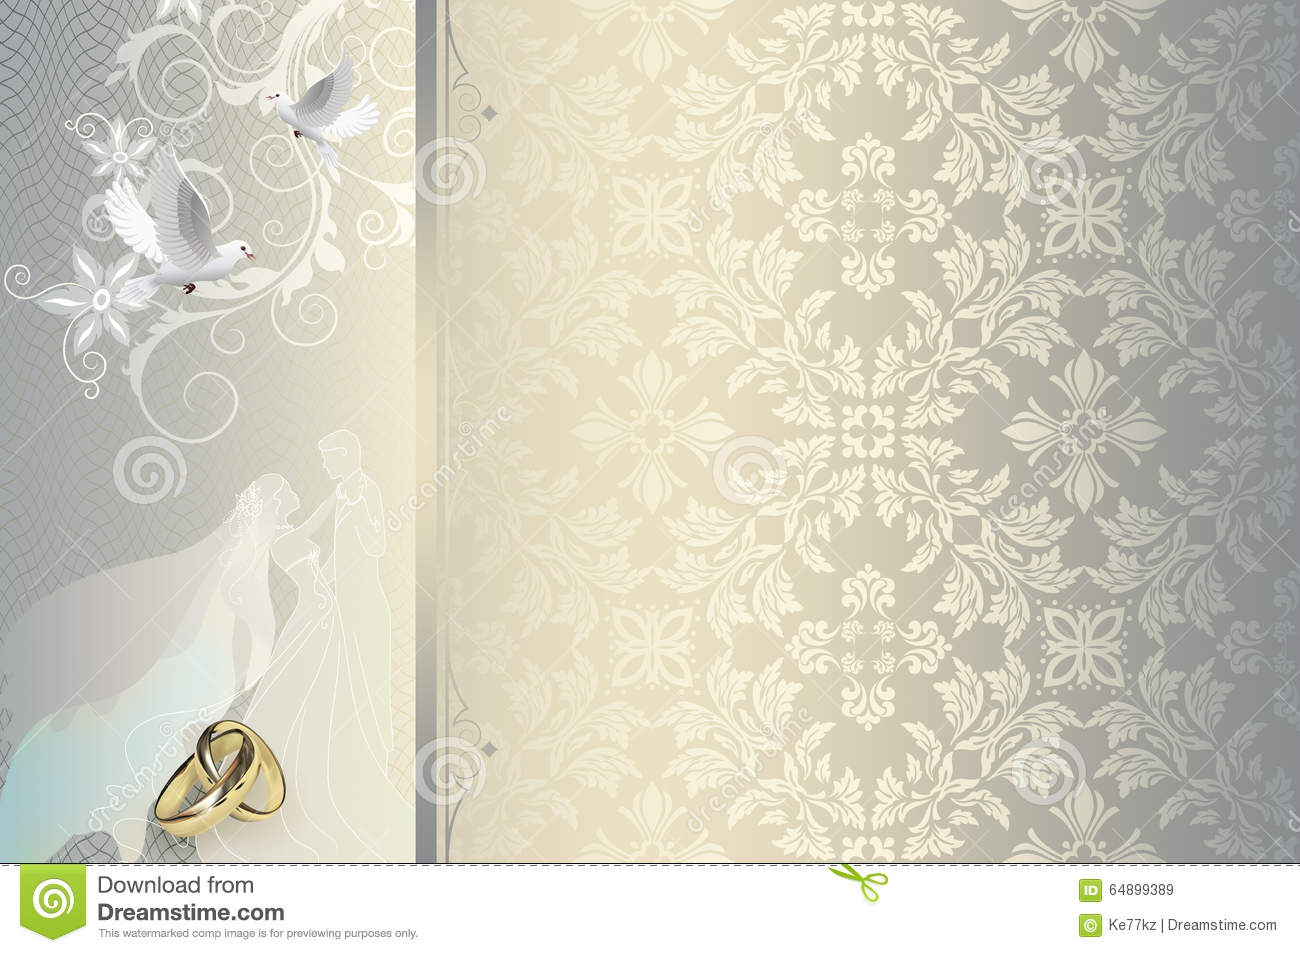 Wedding Invitation Cards Background Designs | www.pixshark ...